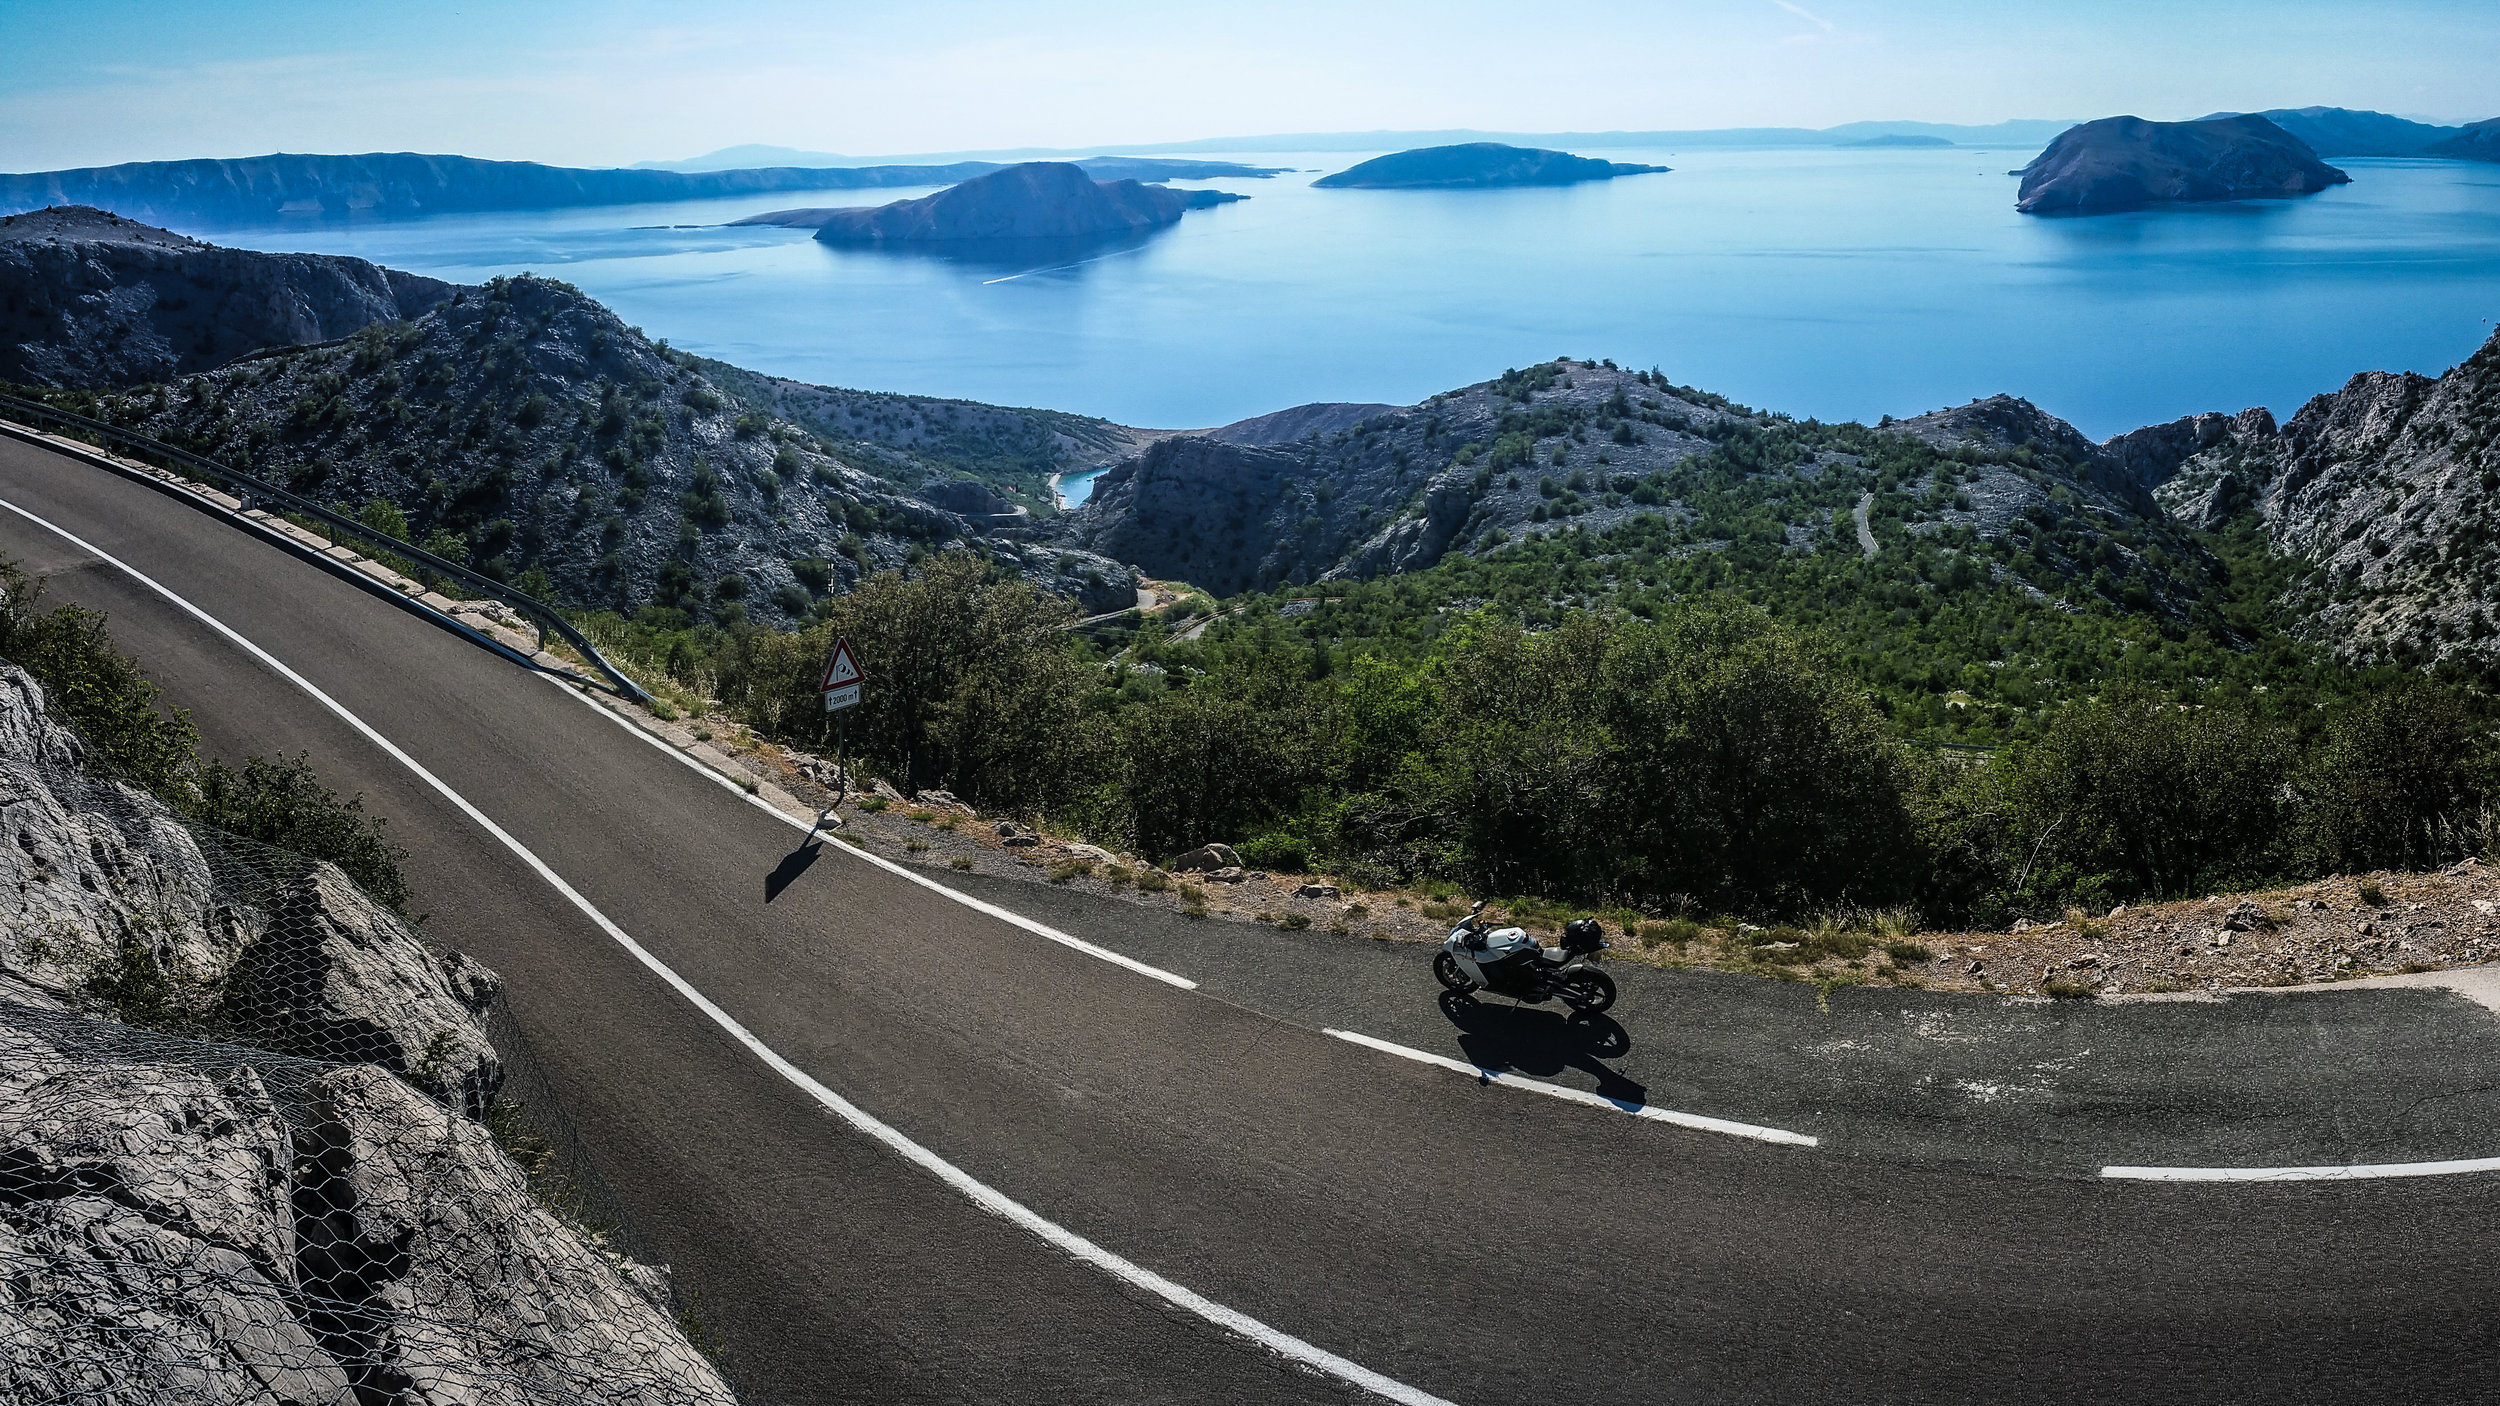 The view from the E65, just south of Senj. Picture: Ben Lindley